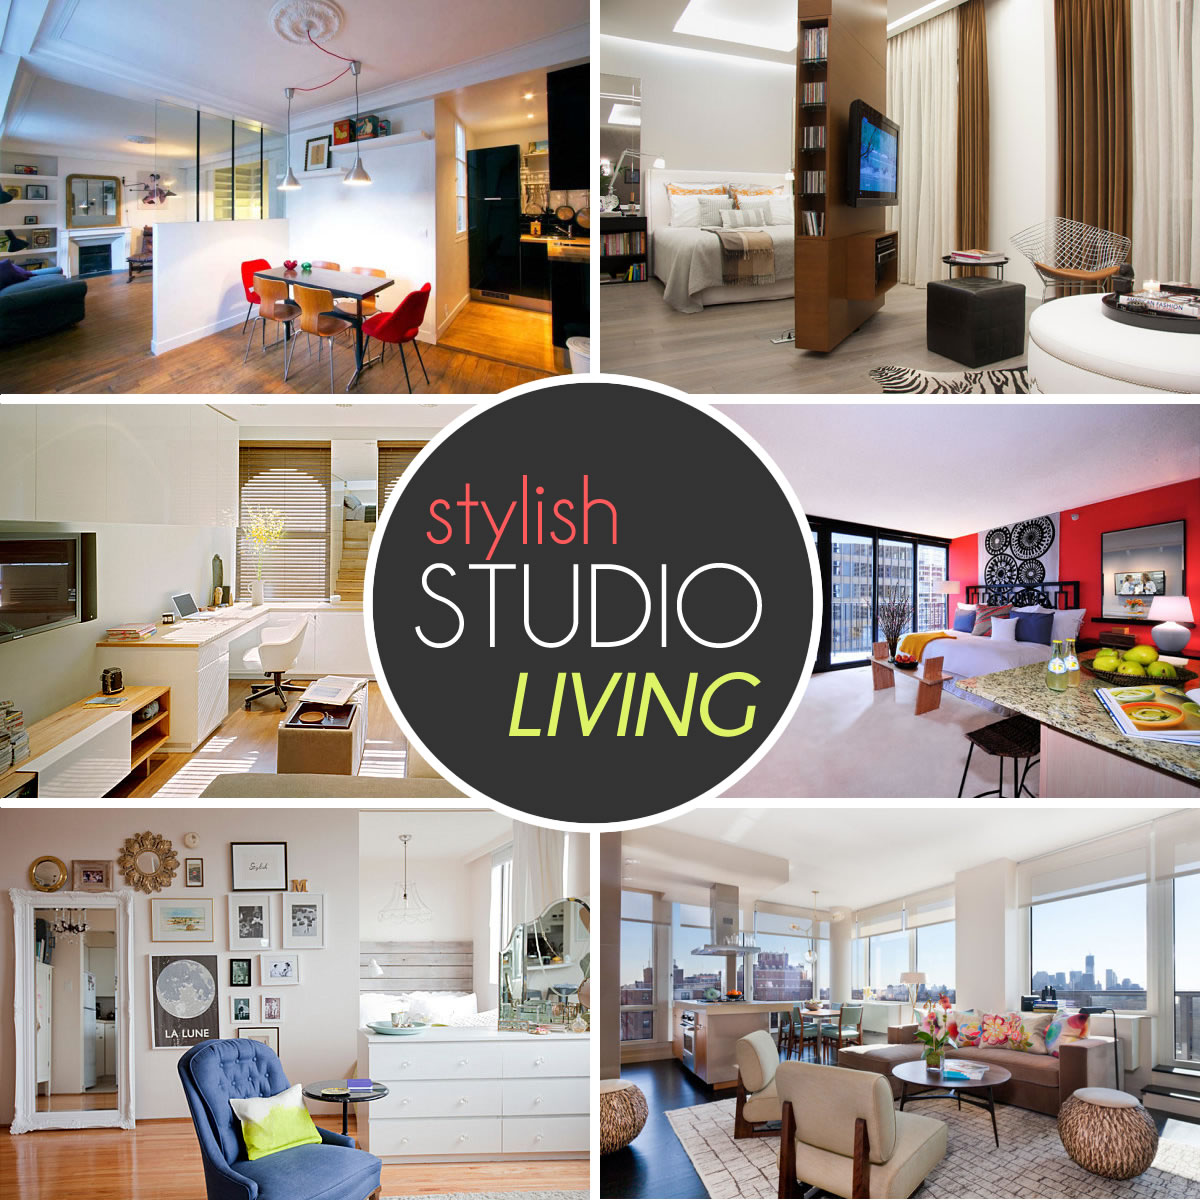 The design lover 39 s guide to stylish studio living The designlover